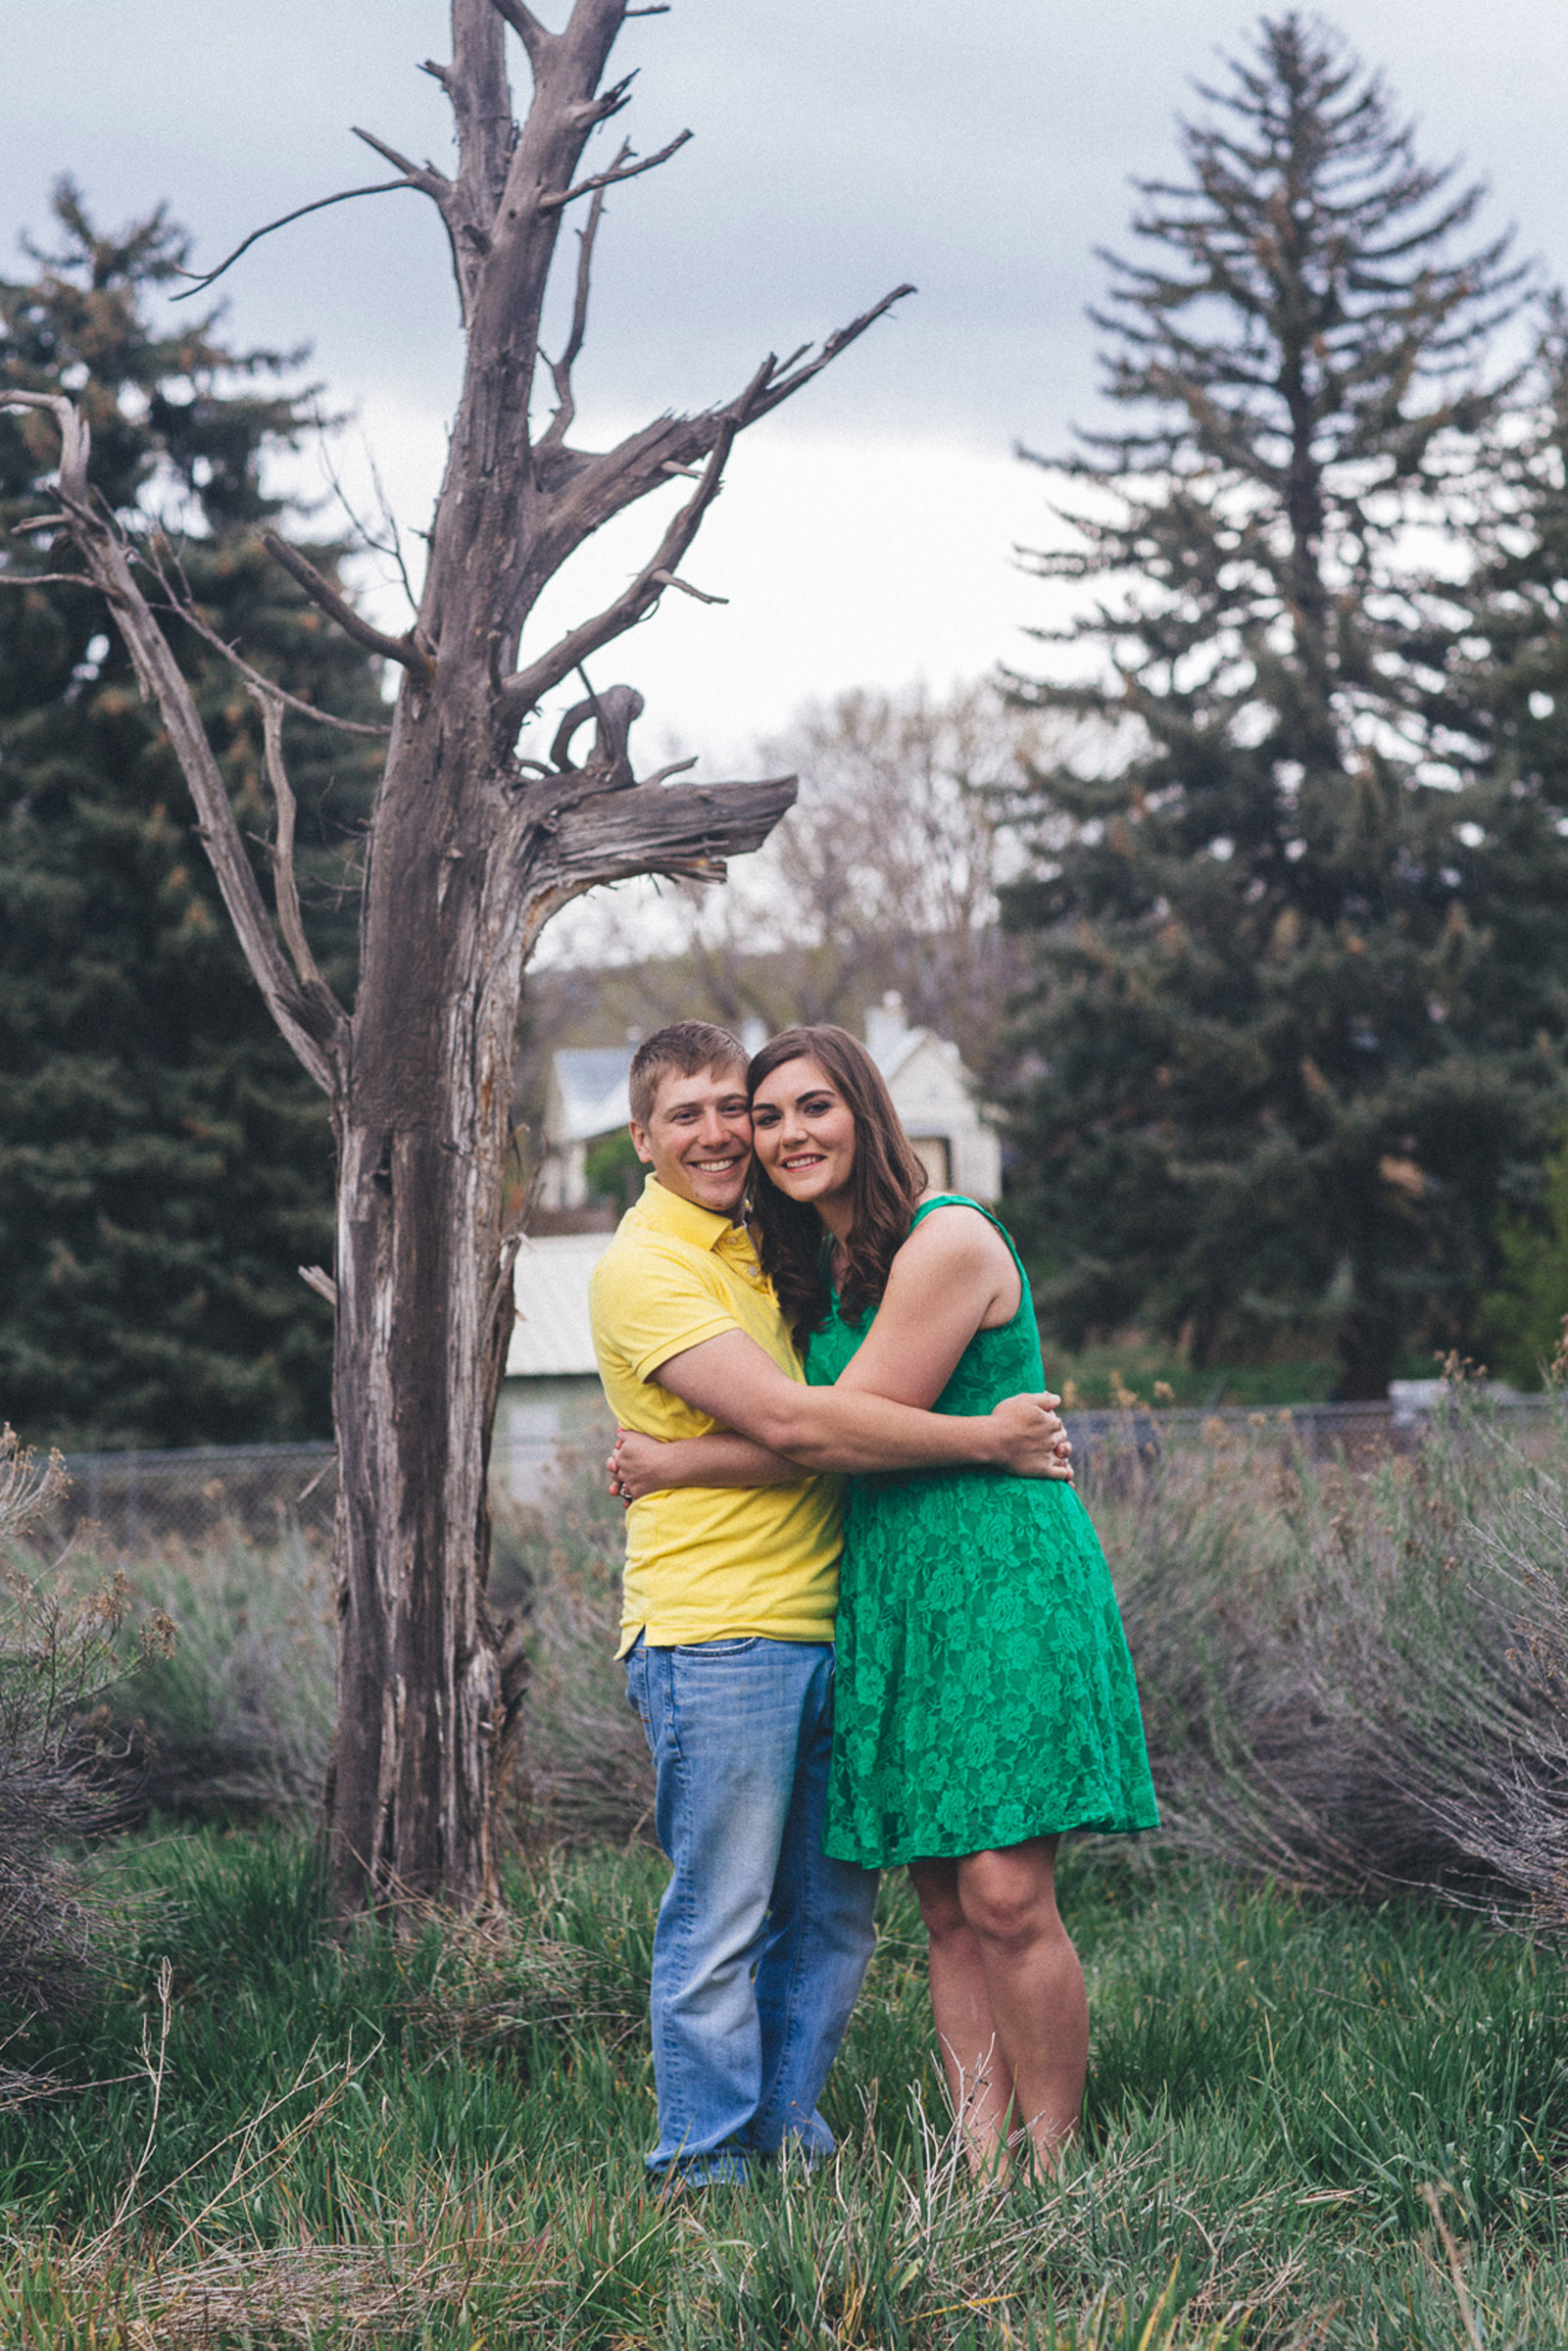 004-engagement-trees-fun-laughing-durango-colorado-farmington